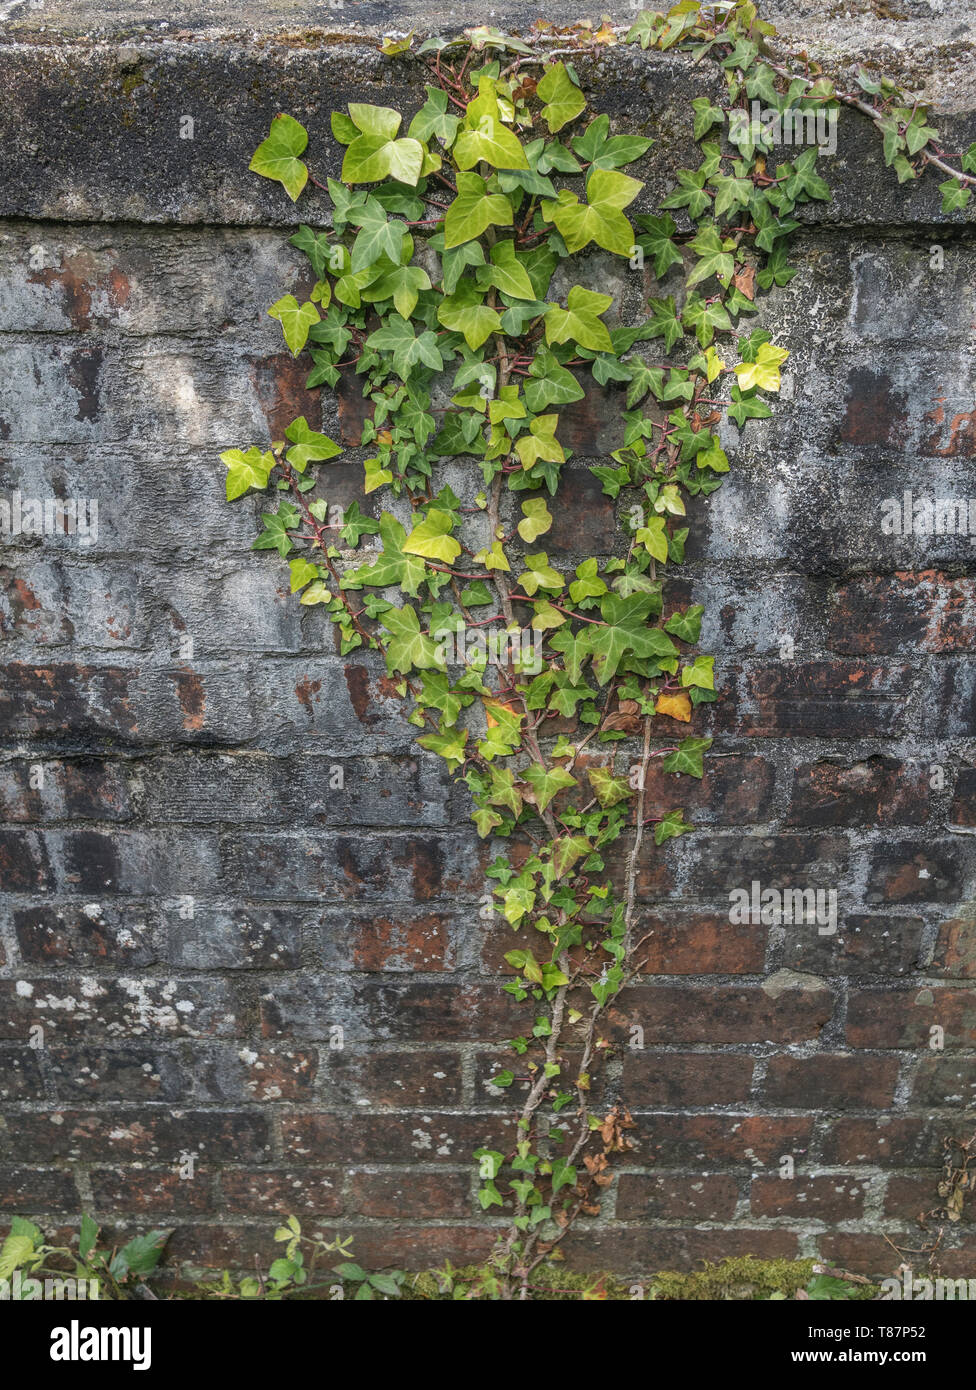 Climbing ivy / Common Ivy - Hedera helix - growing up the side of a brick wall. Concept creeping ivy. Stock Photo